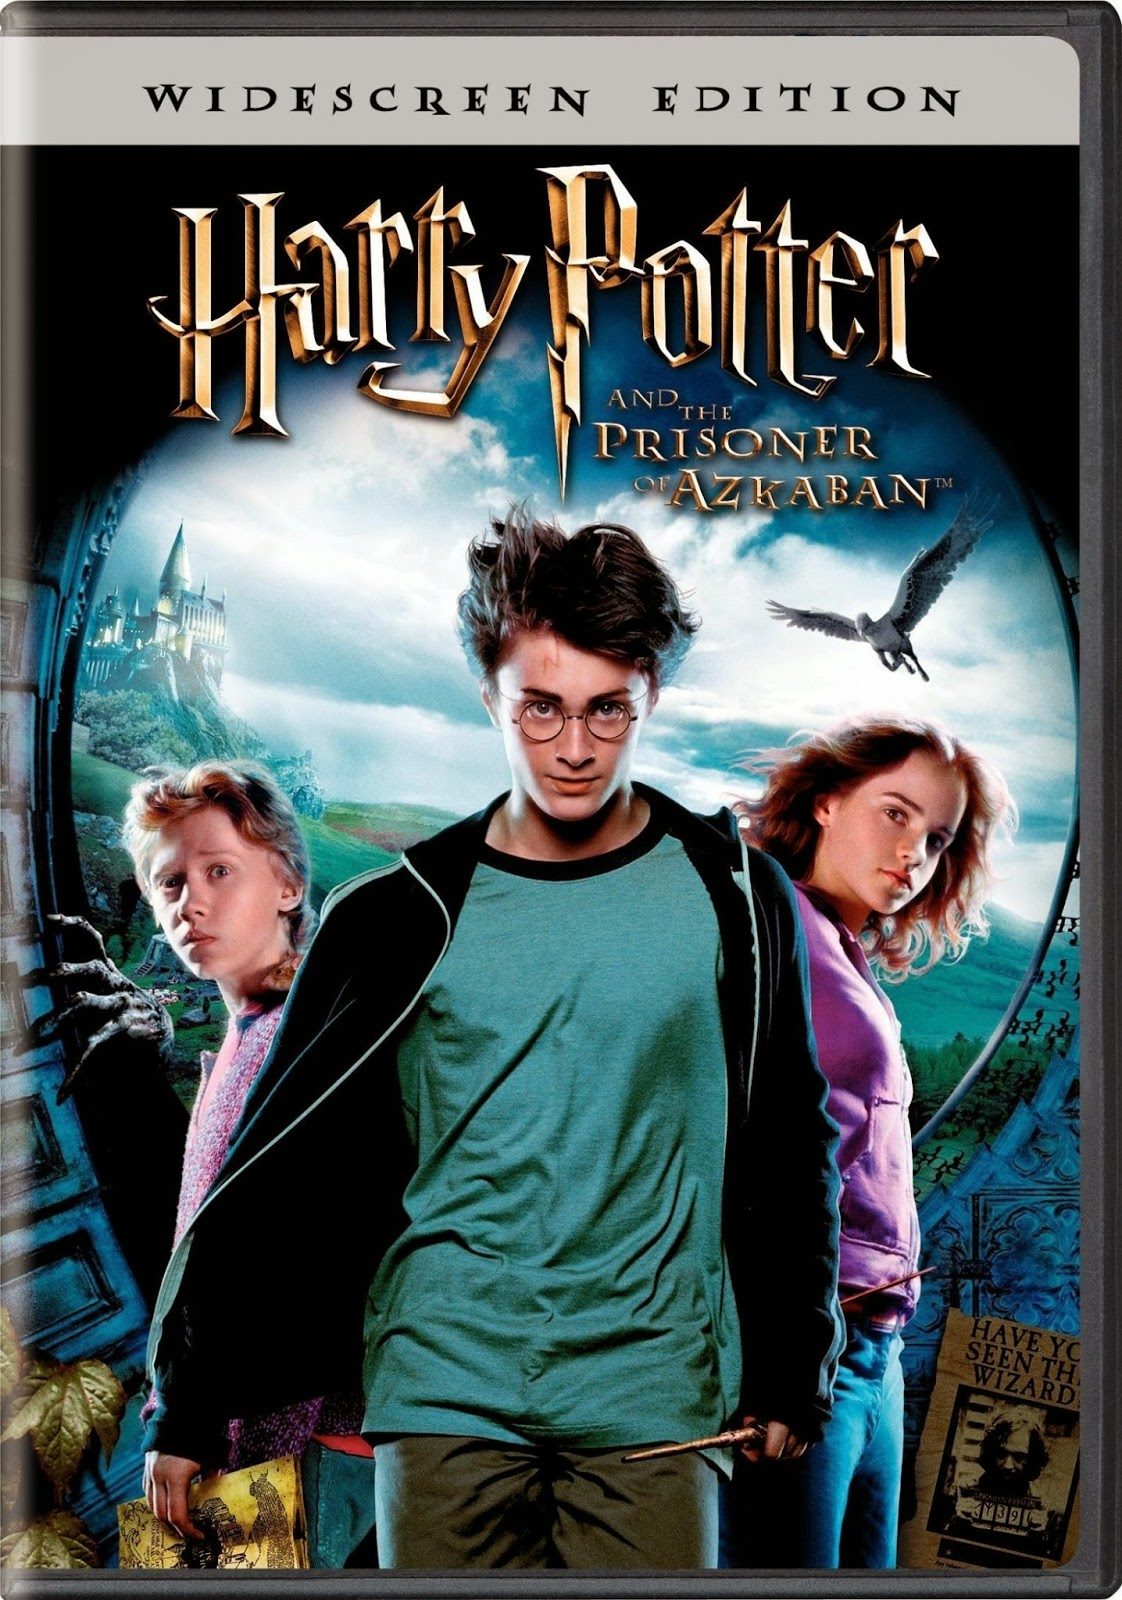 http://discover.halifaxpubliclibraries.ca/?q=title:harry%20potter